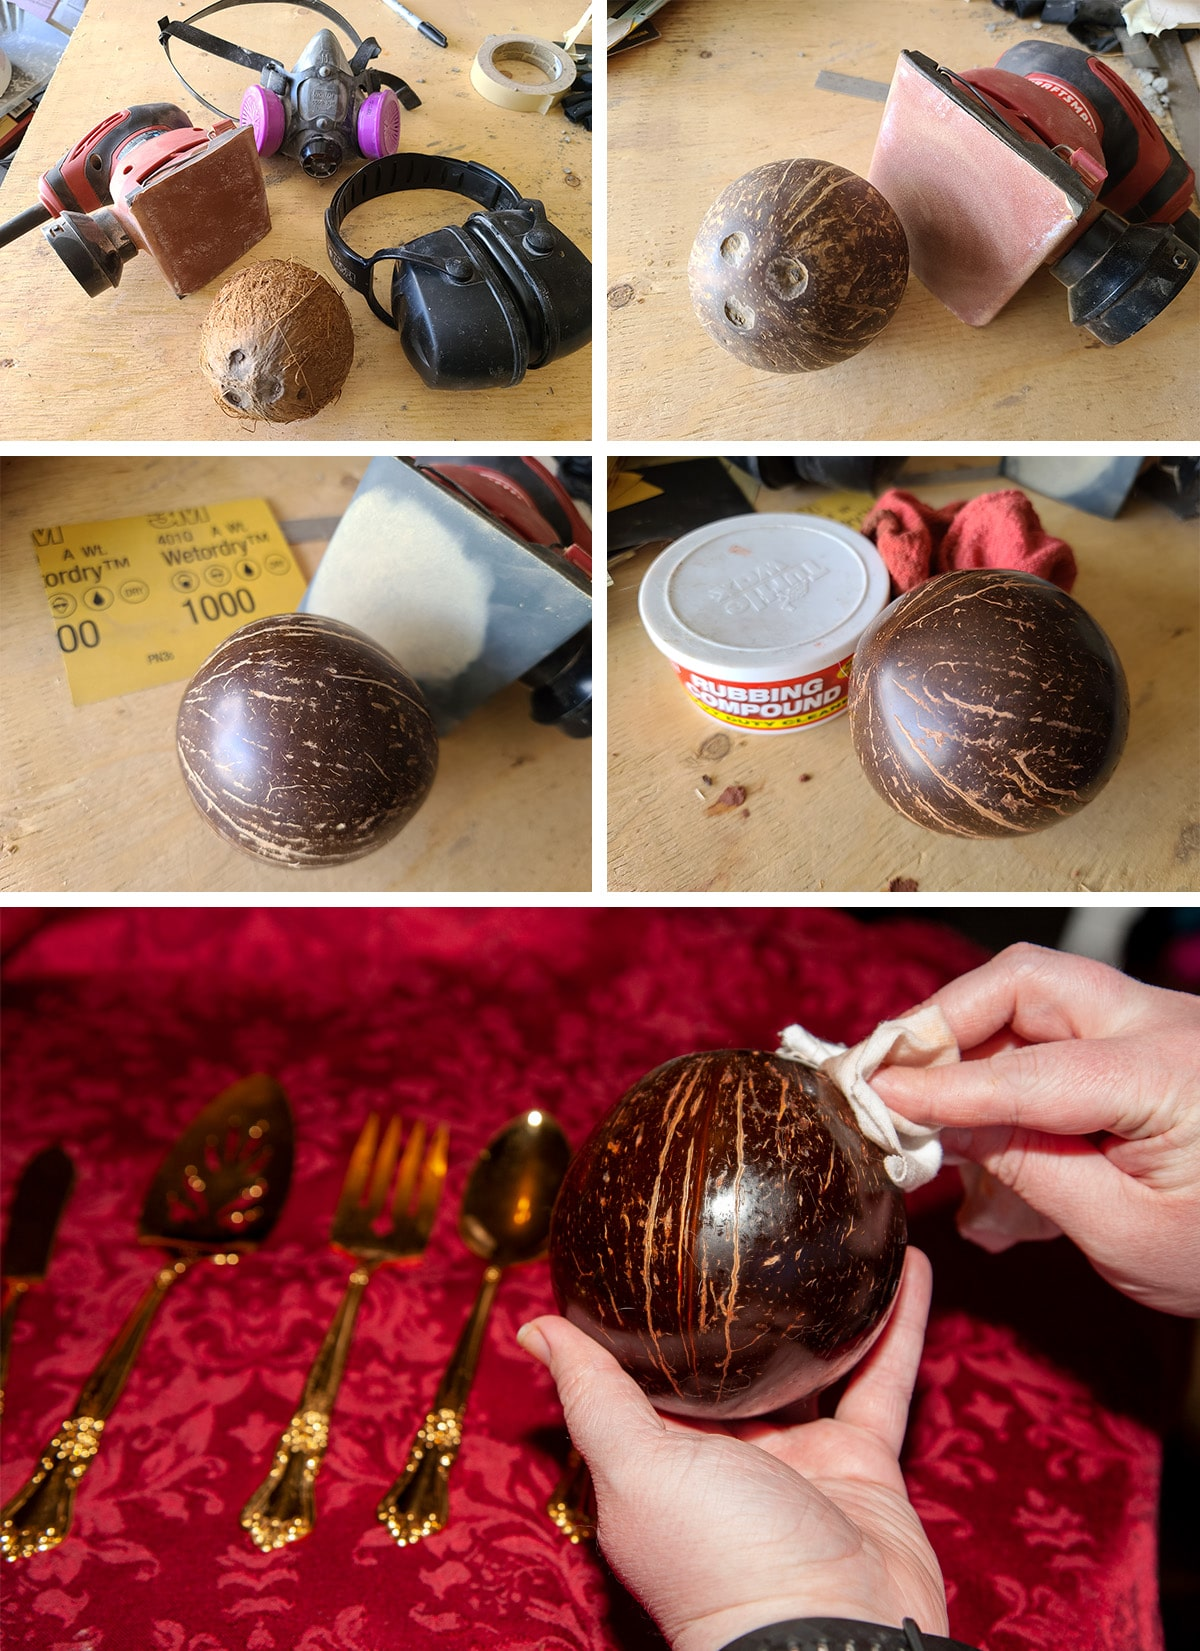 A 5 part progression of the coconut being sanded and polished.